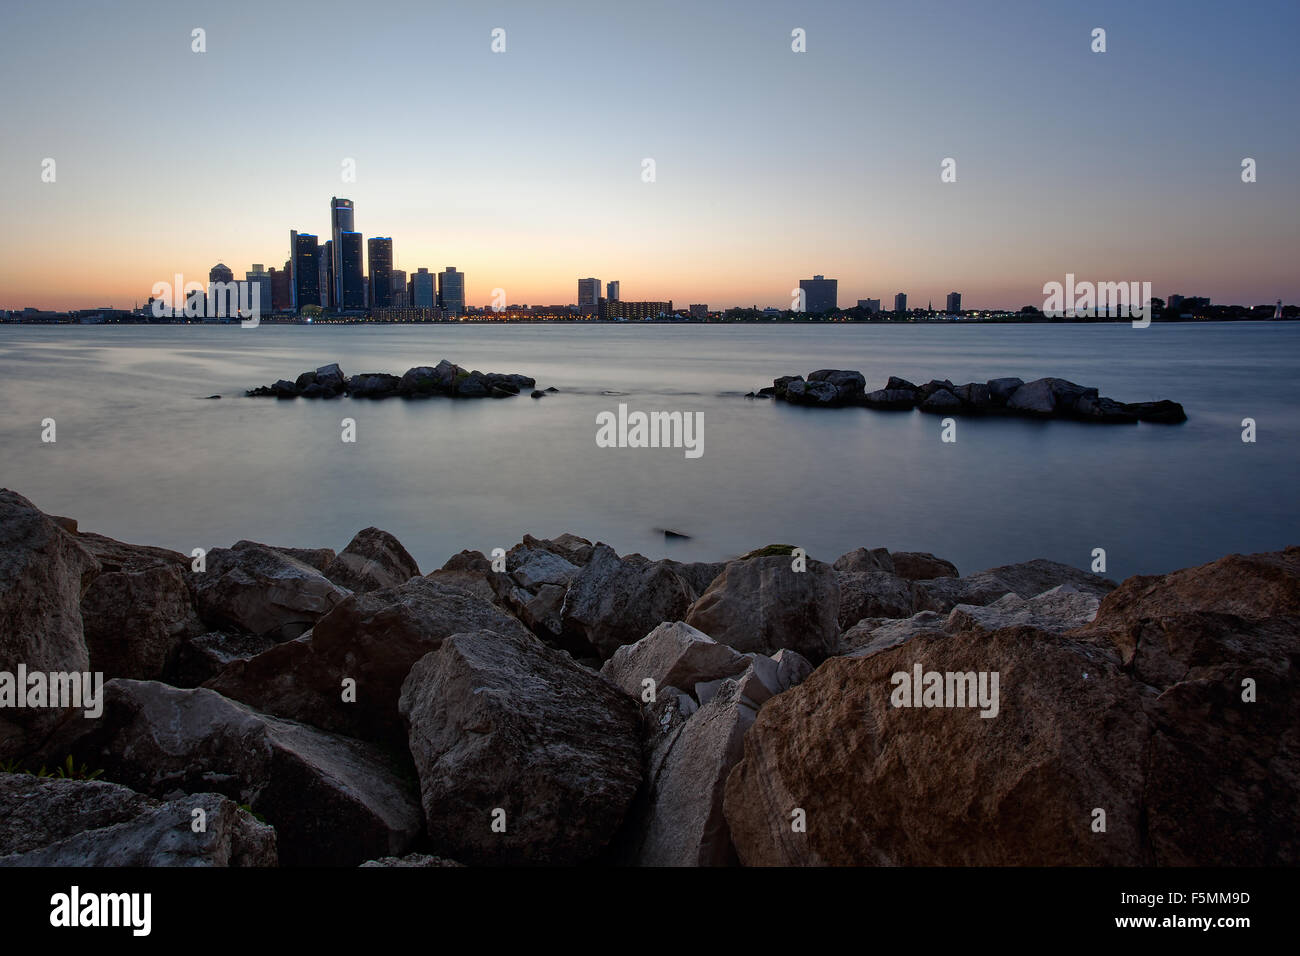 A landscape image of the Detroit River and Detroit, City skyline as seen from Windsor, Ontario Canada - Stock Image